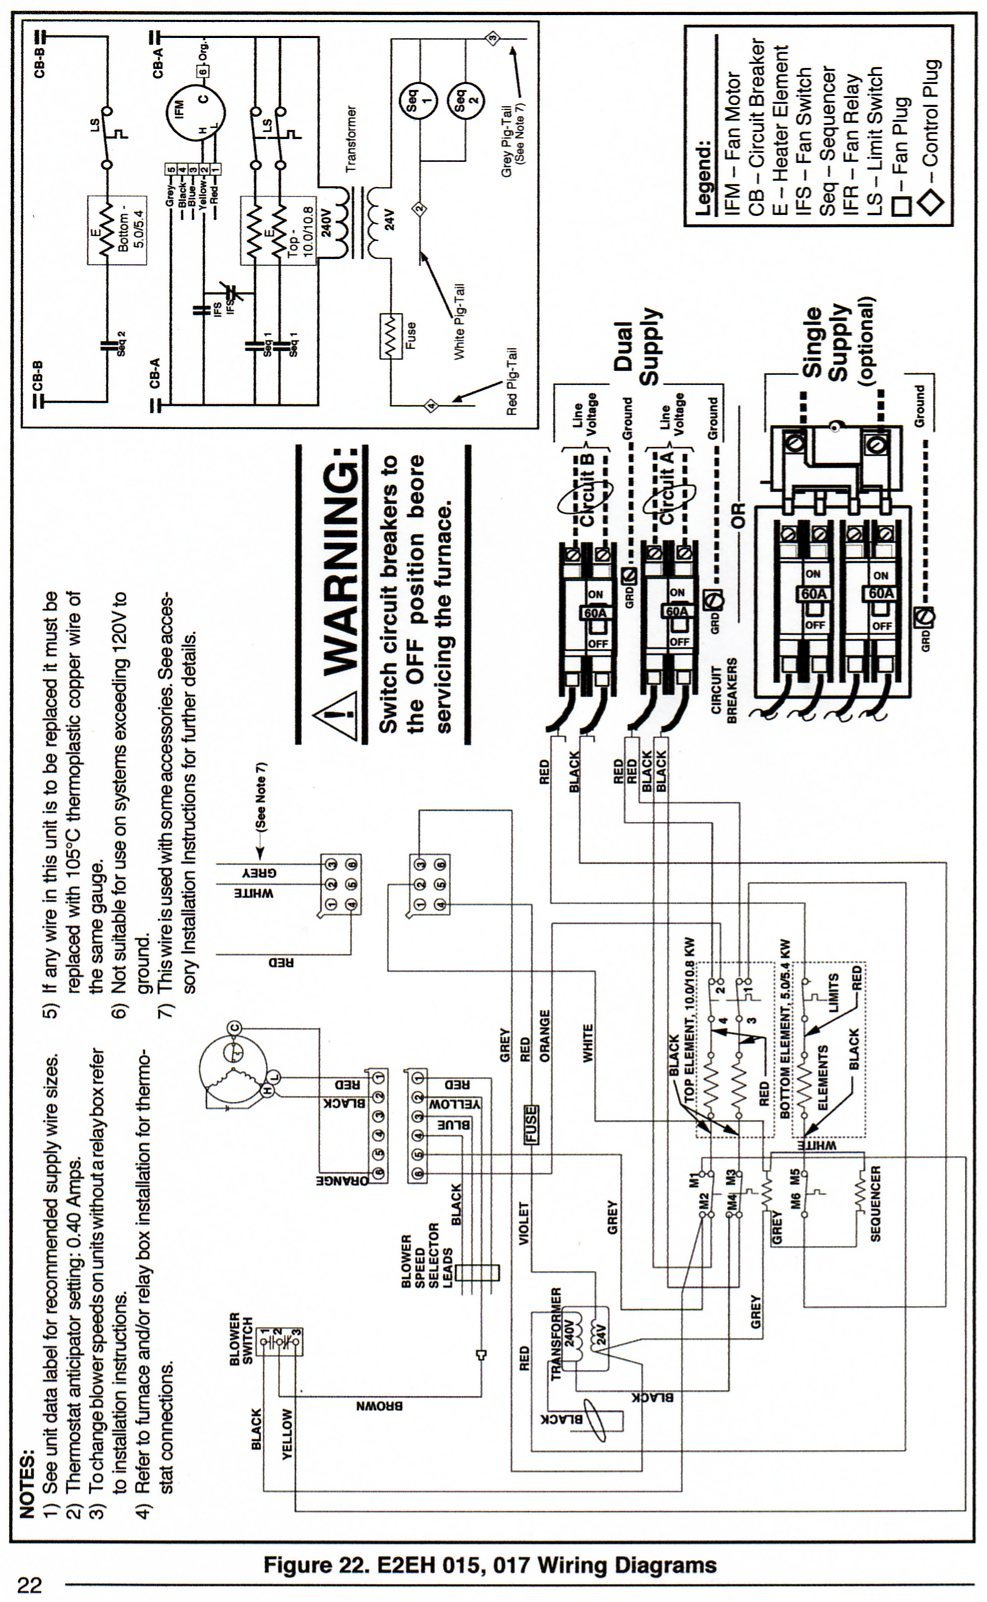 Wiring Diagram Of Ductable Ac